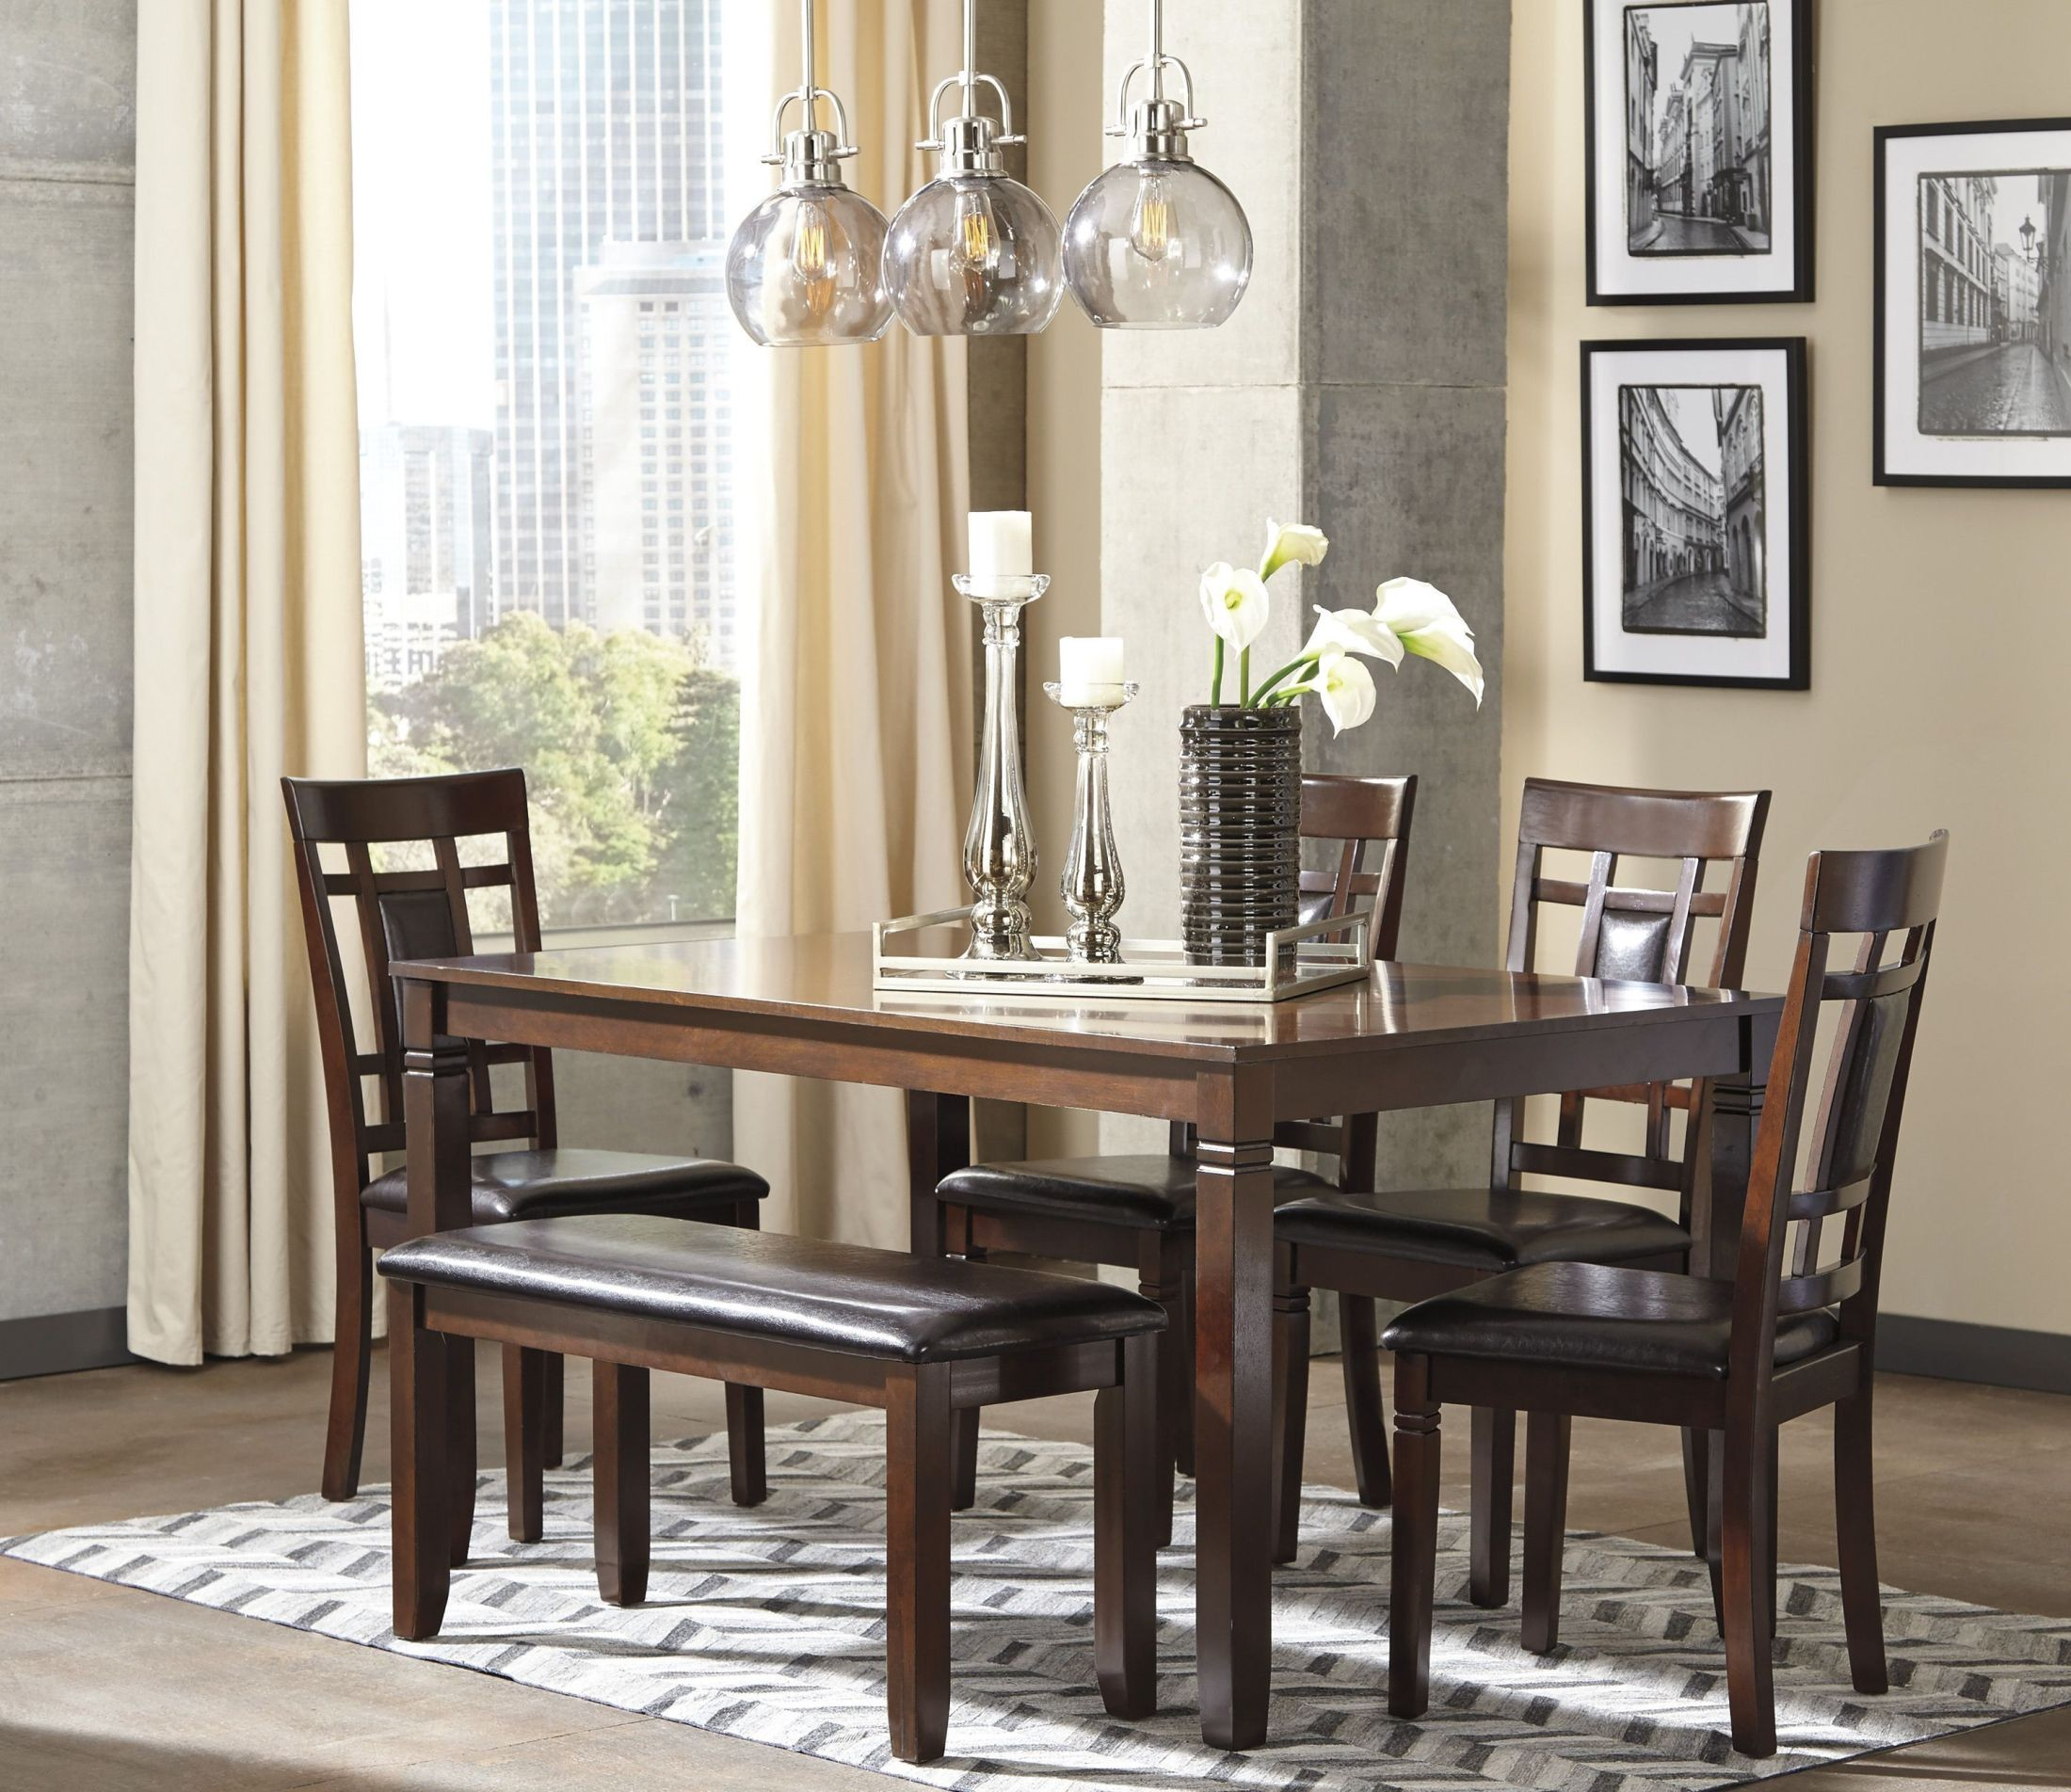 Bennox brown 6 piece rectangular dining room set from for Dining room sets 6 piece